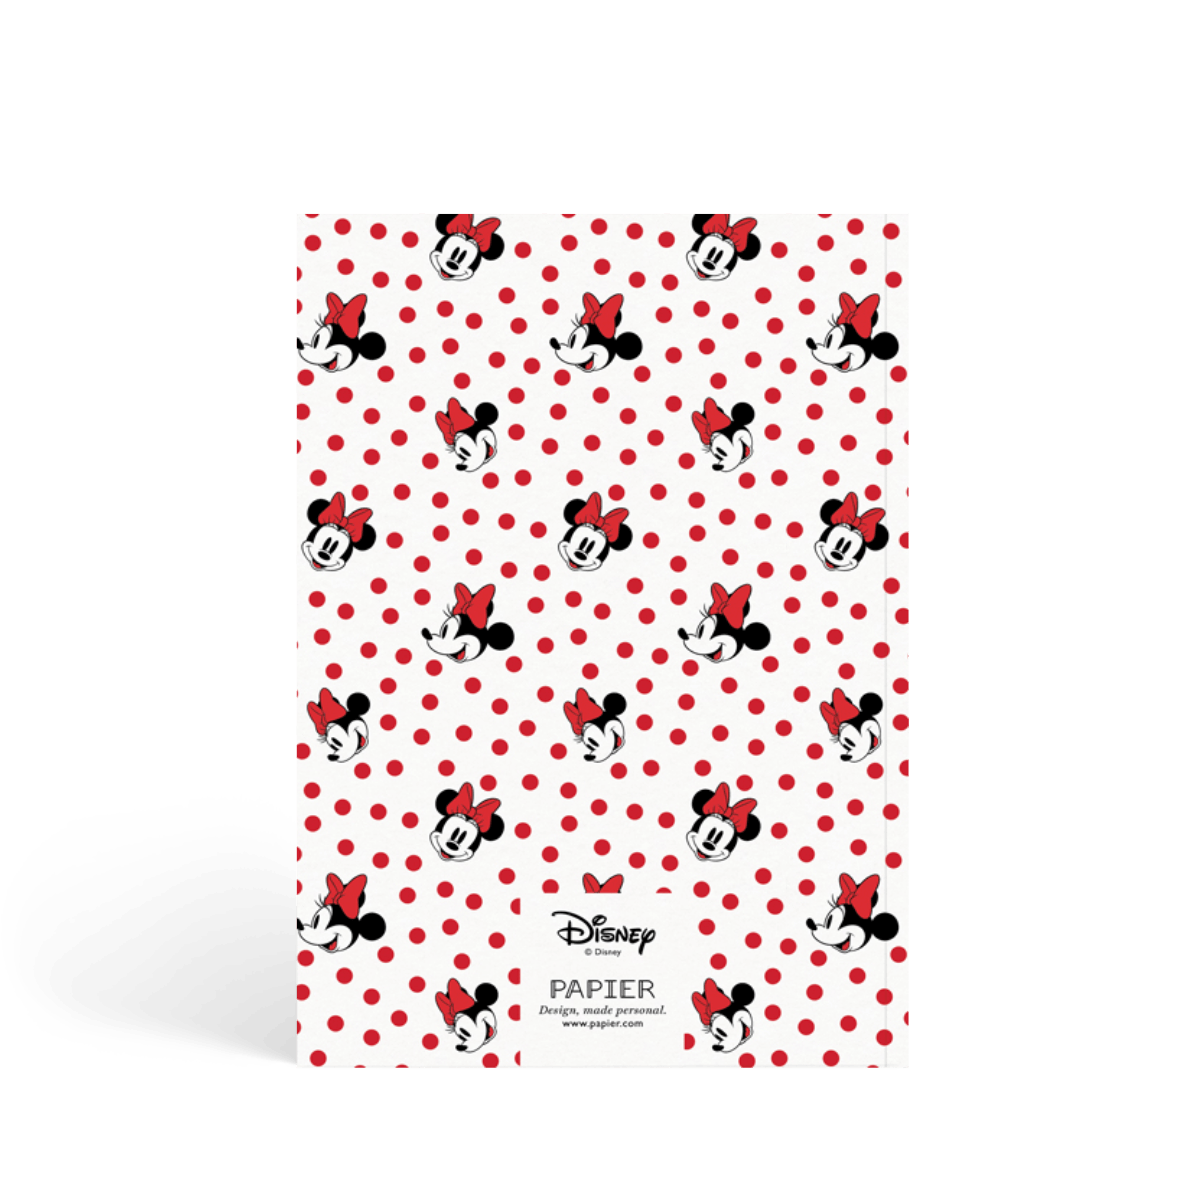 Https%3a%2f%2fwww.papier.com%2fproduct image%2f56033%2f5%2fminnie mouse 13462 back 1569450719.png?ixlib=rb 1.1